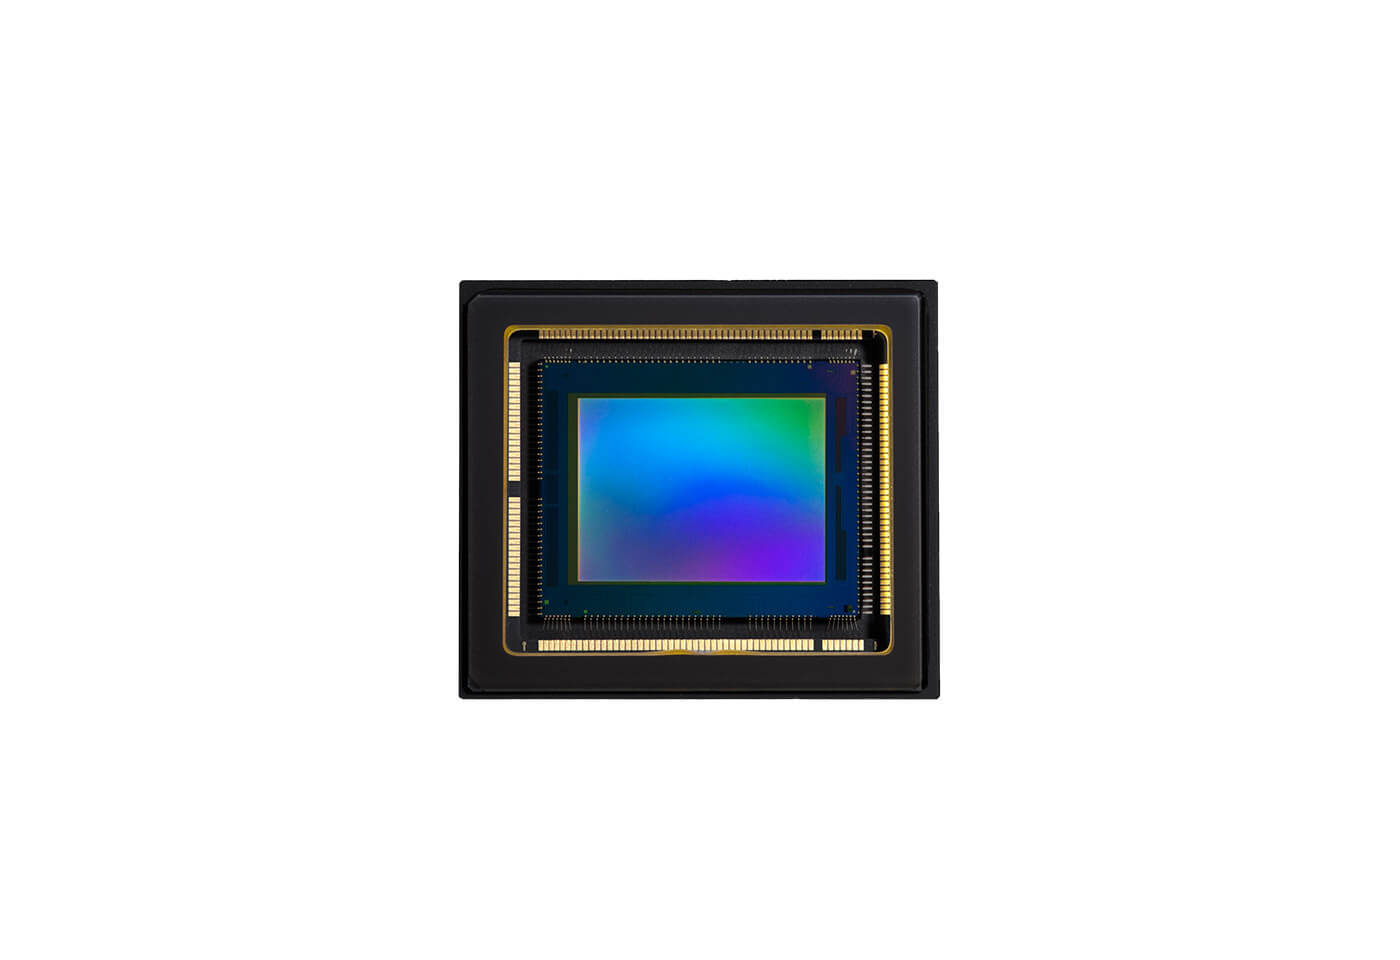 1.0-type CMOS Sensor image of Canon XC10 compact video and stills camera